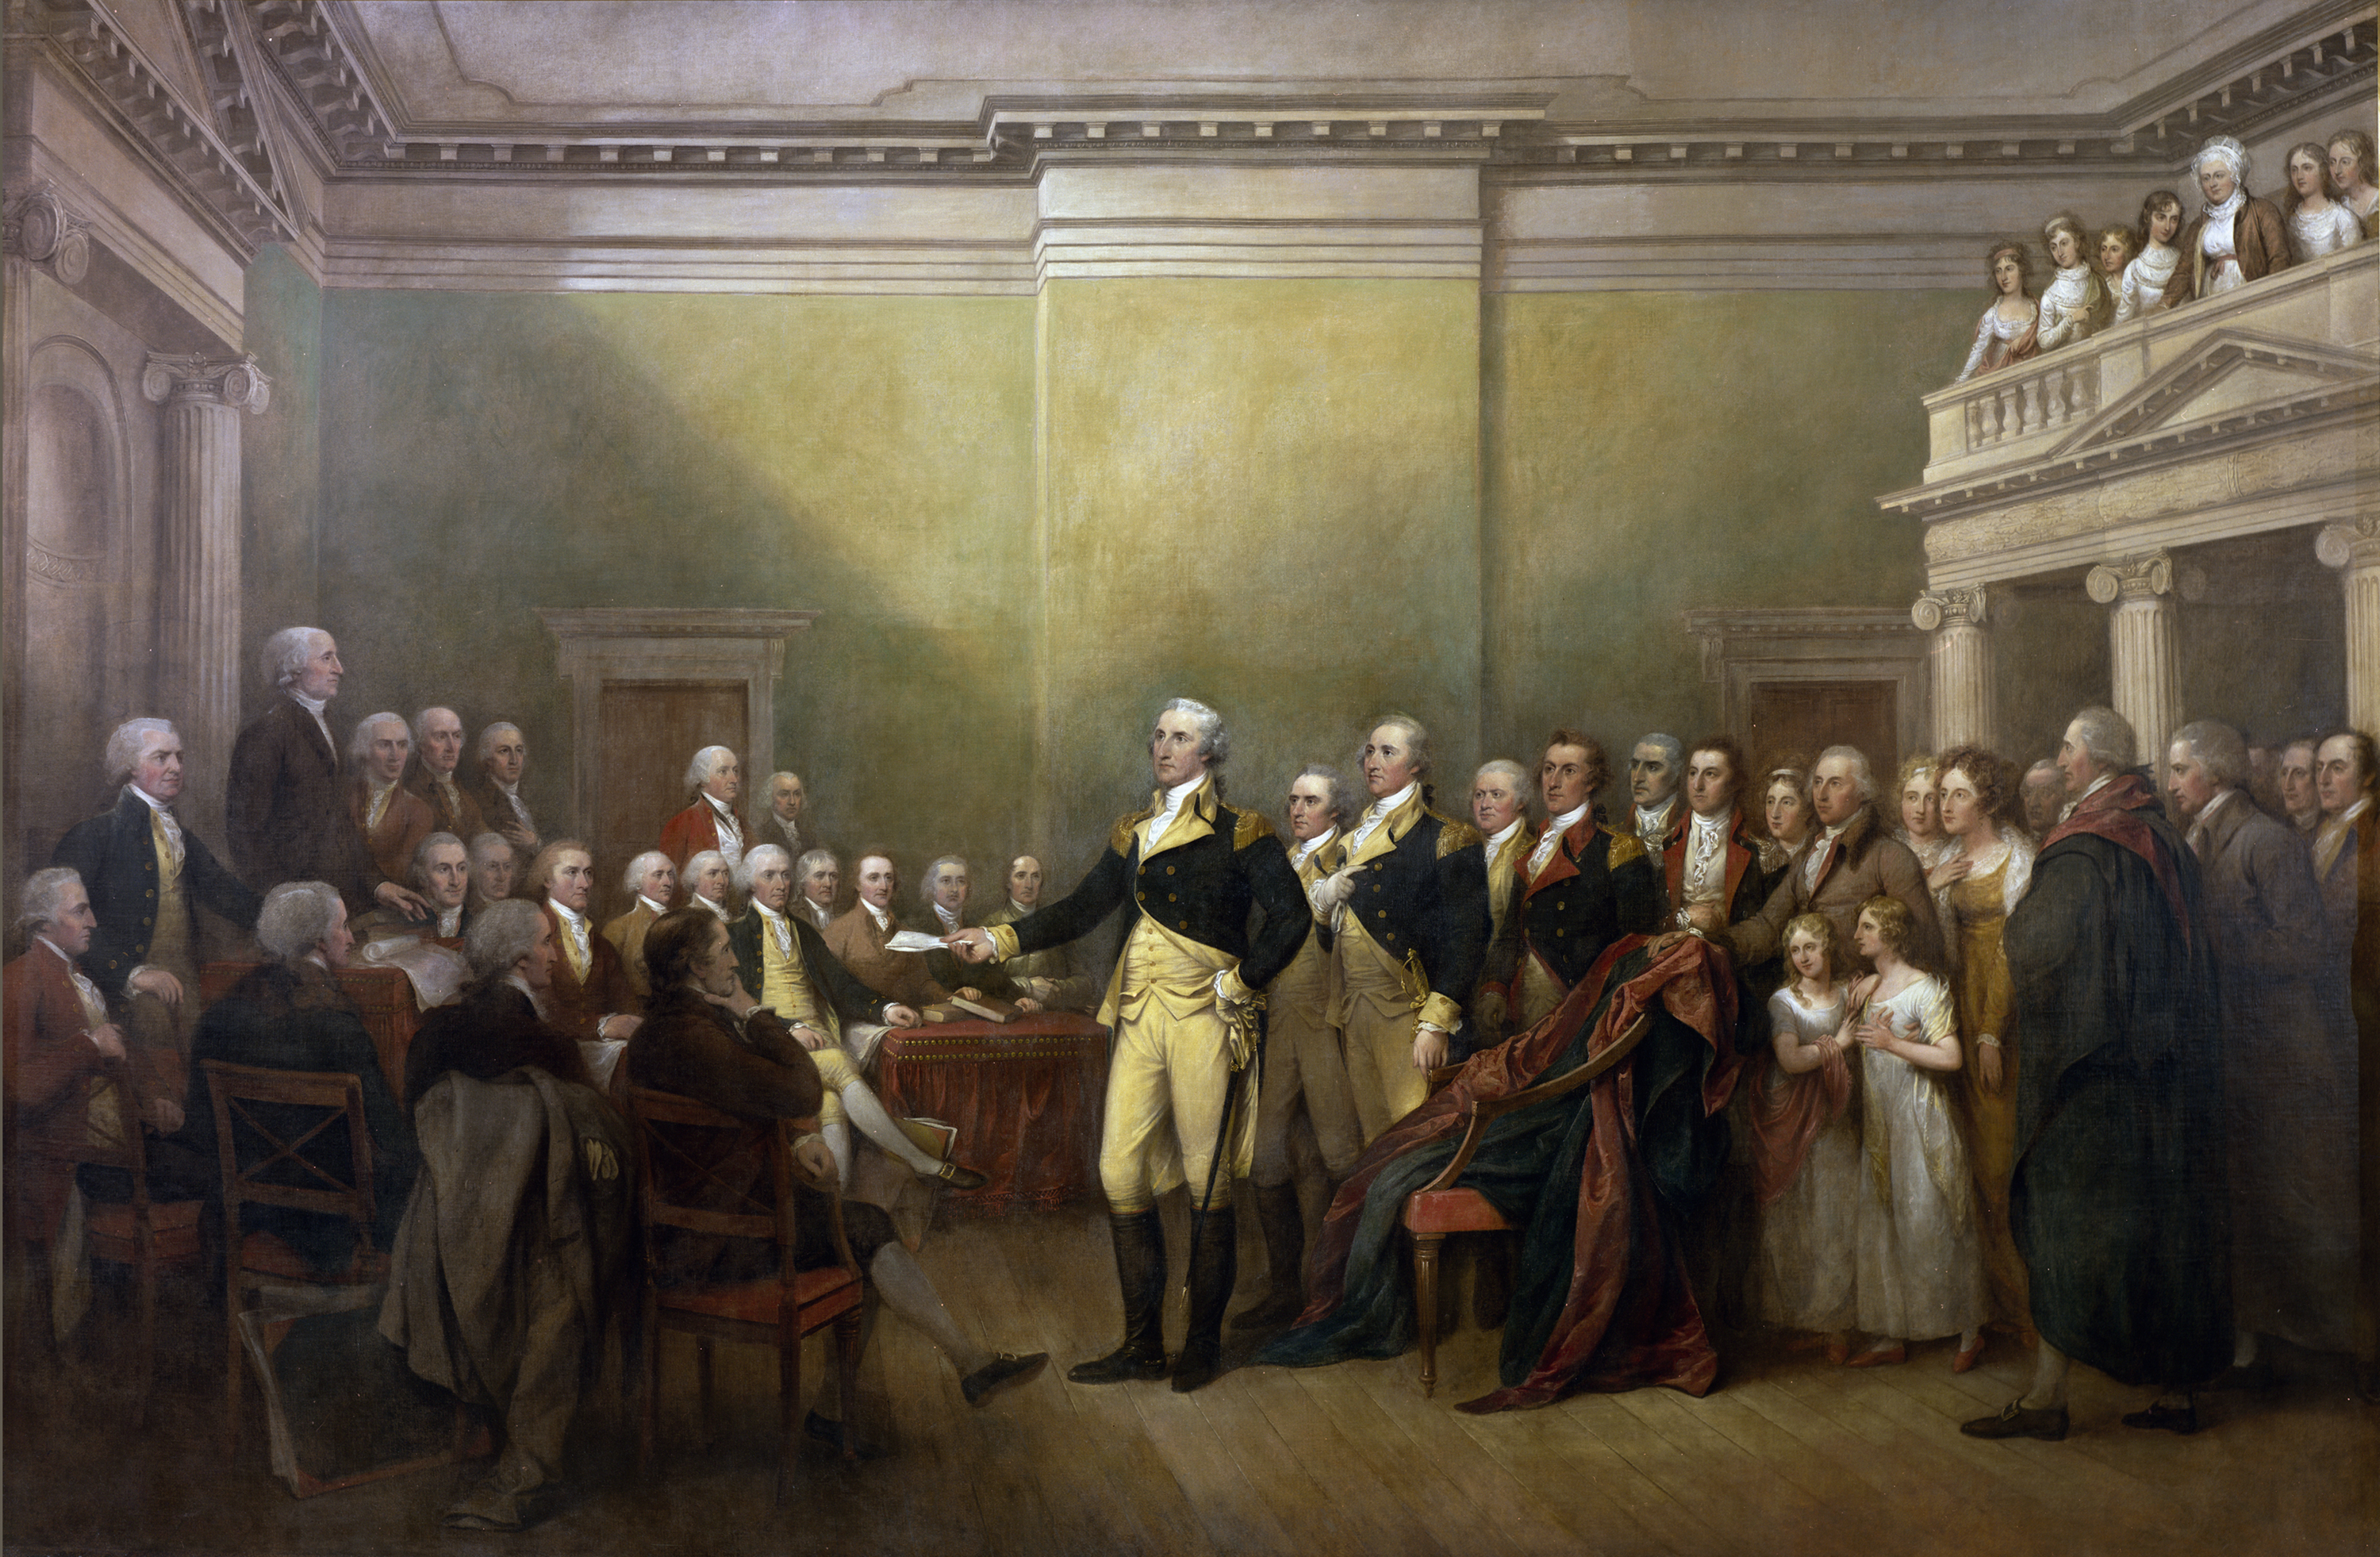 General George Washington Resigning His Commission by John Trumbull, Capitol Rotunda (commissioned 1817)